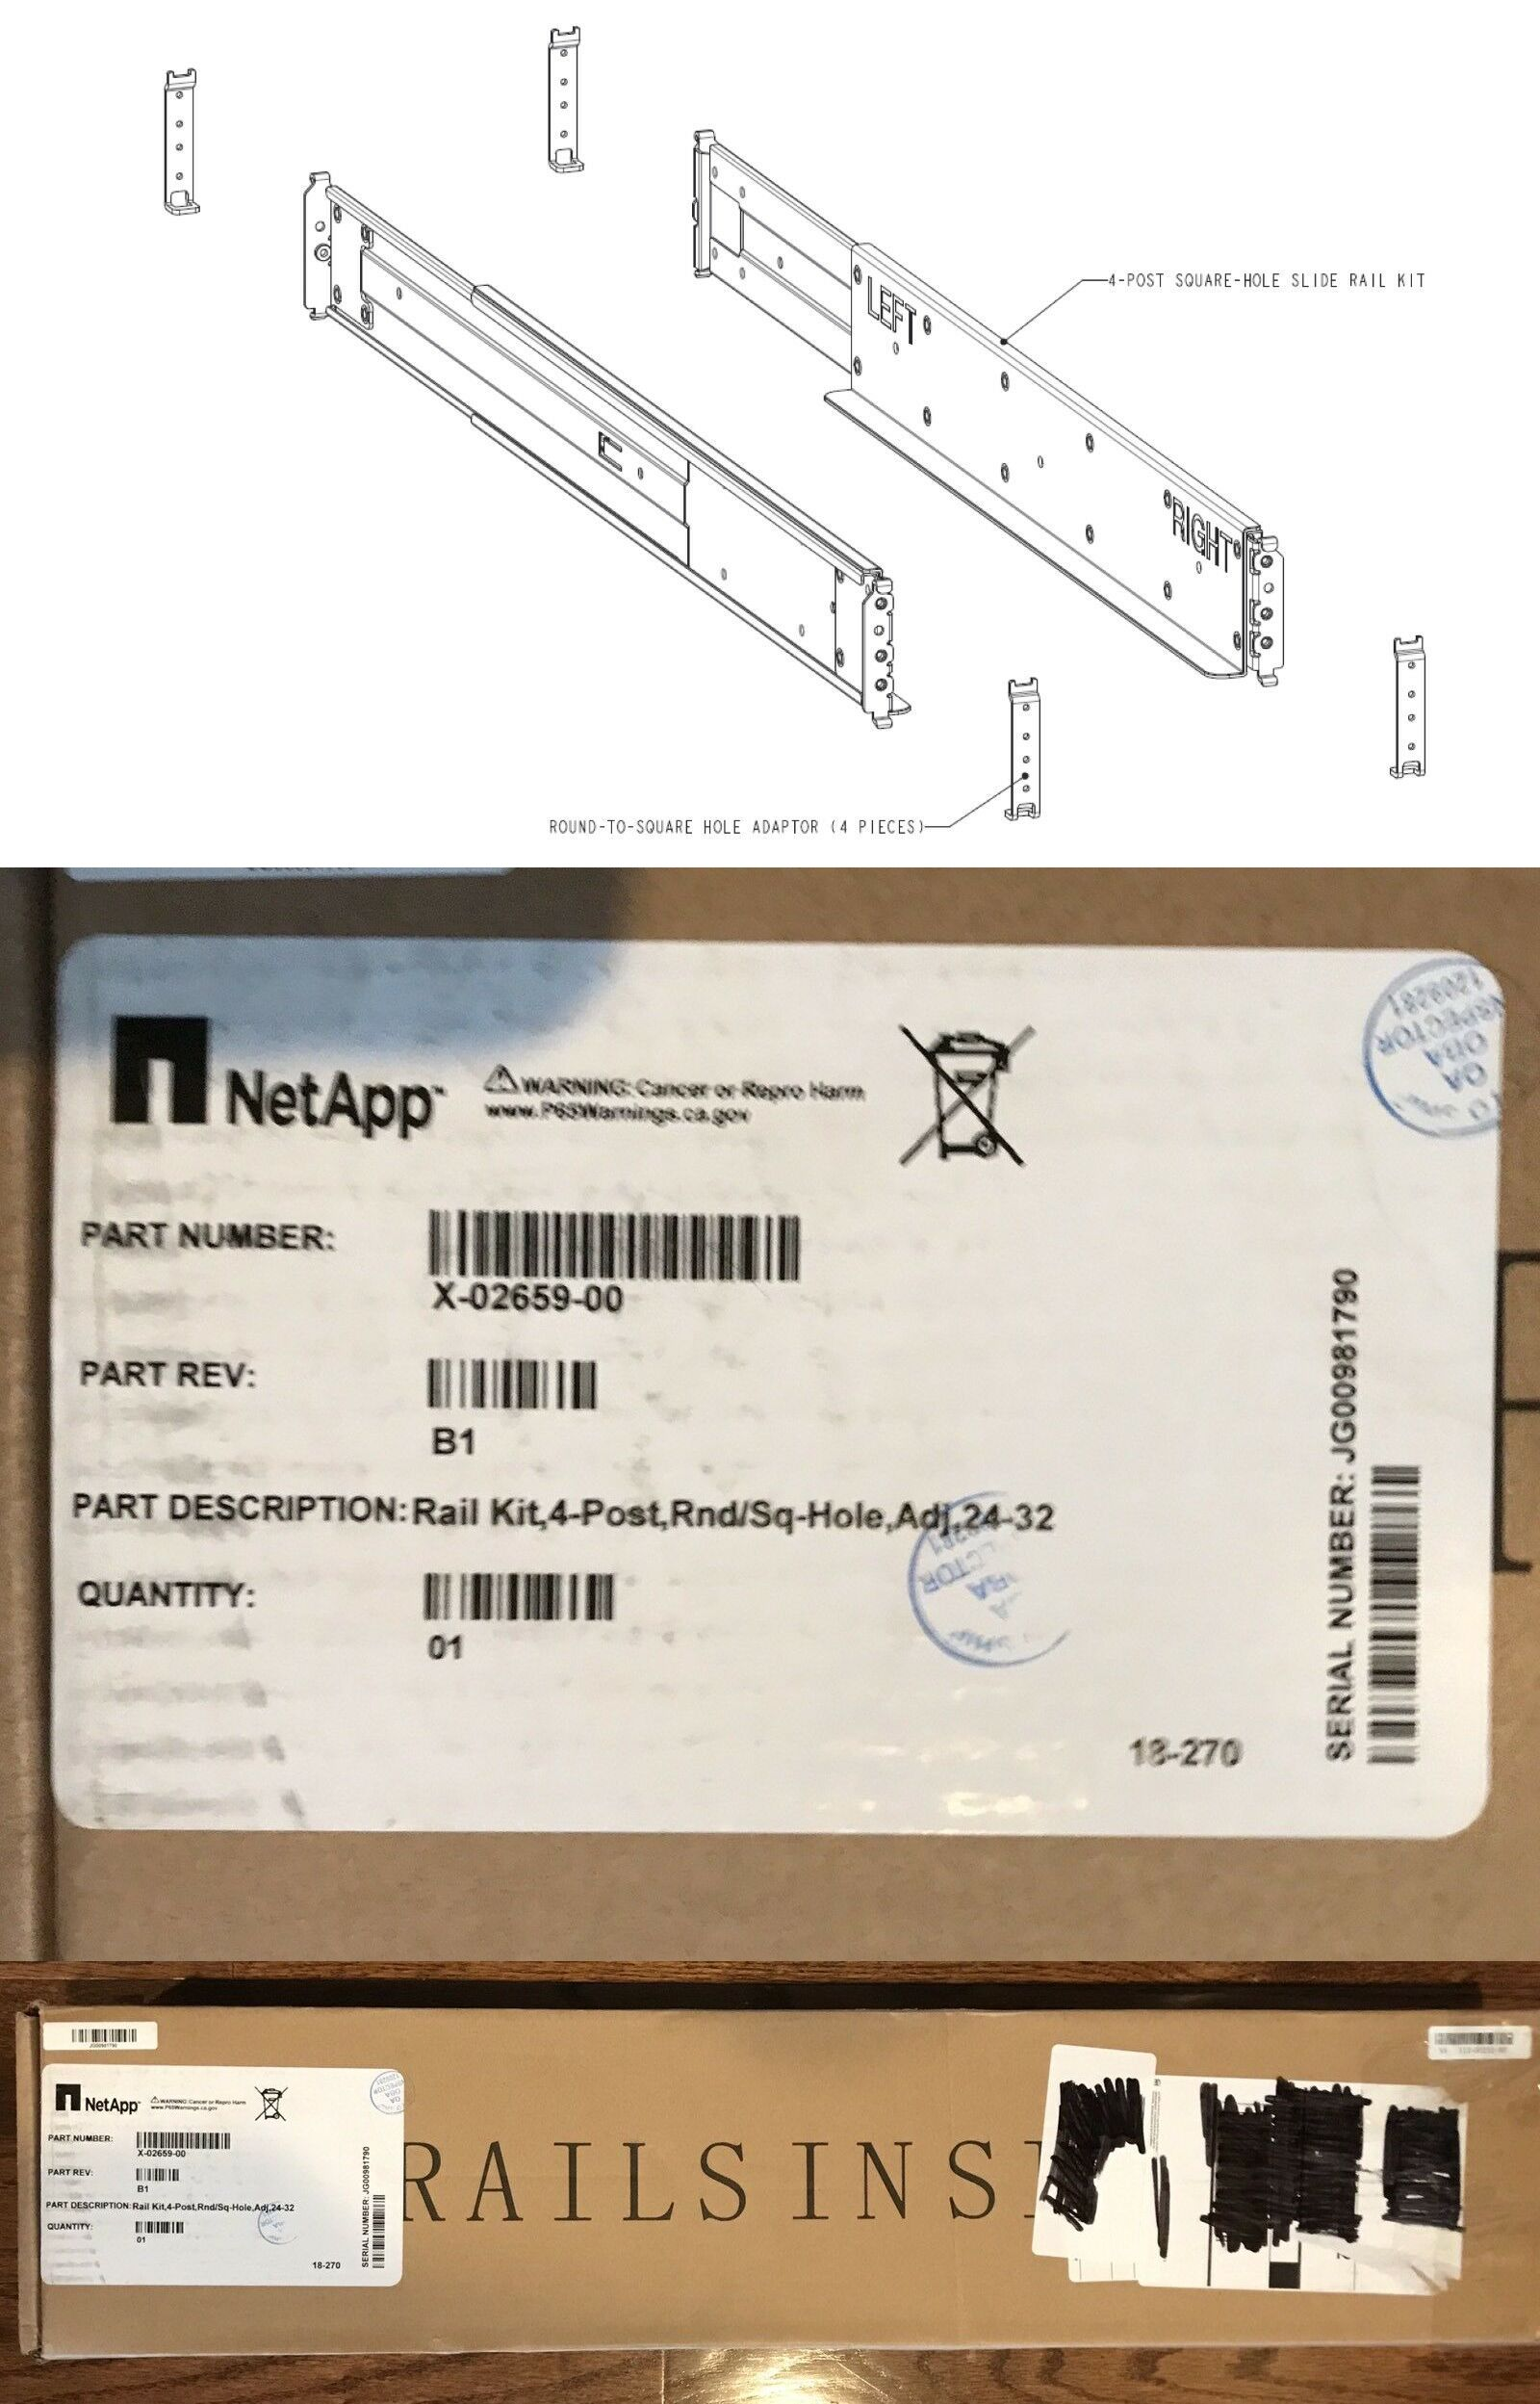 small resolution of disk array components 58322 netapp x 02659 00 rail kit 4 post square or round hole 24 32 rail buy it now only 35 on ebay array components netapp